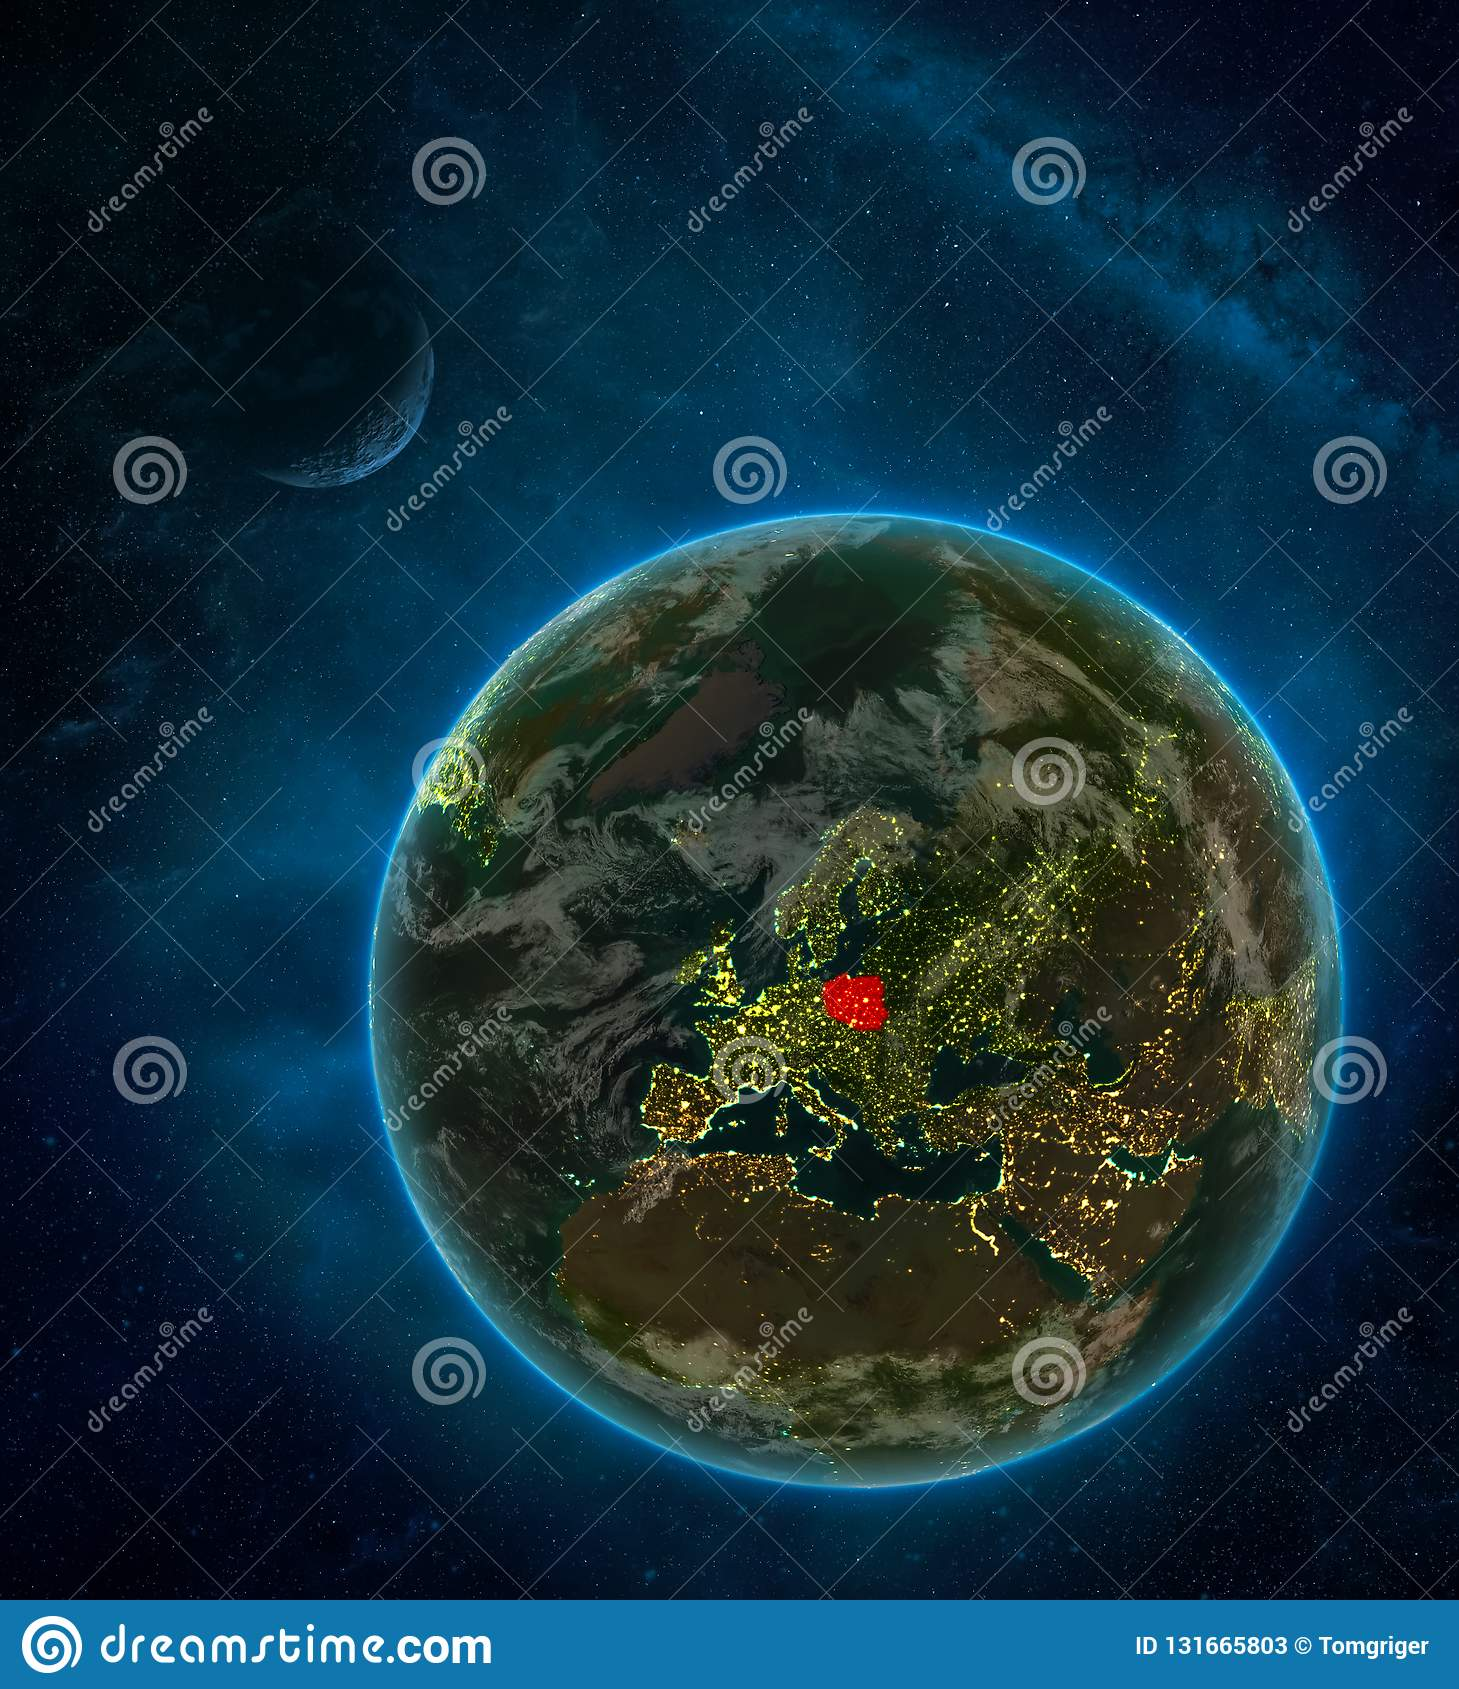 Poland From Space On Earth At Night Surrounded By Space With